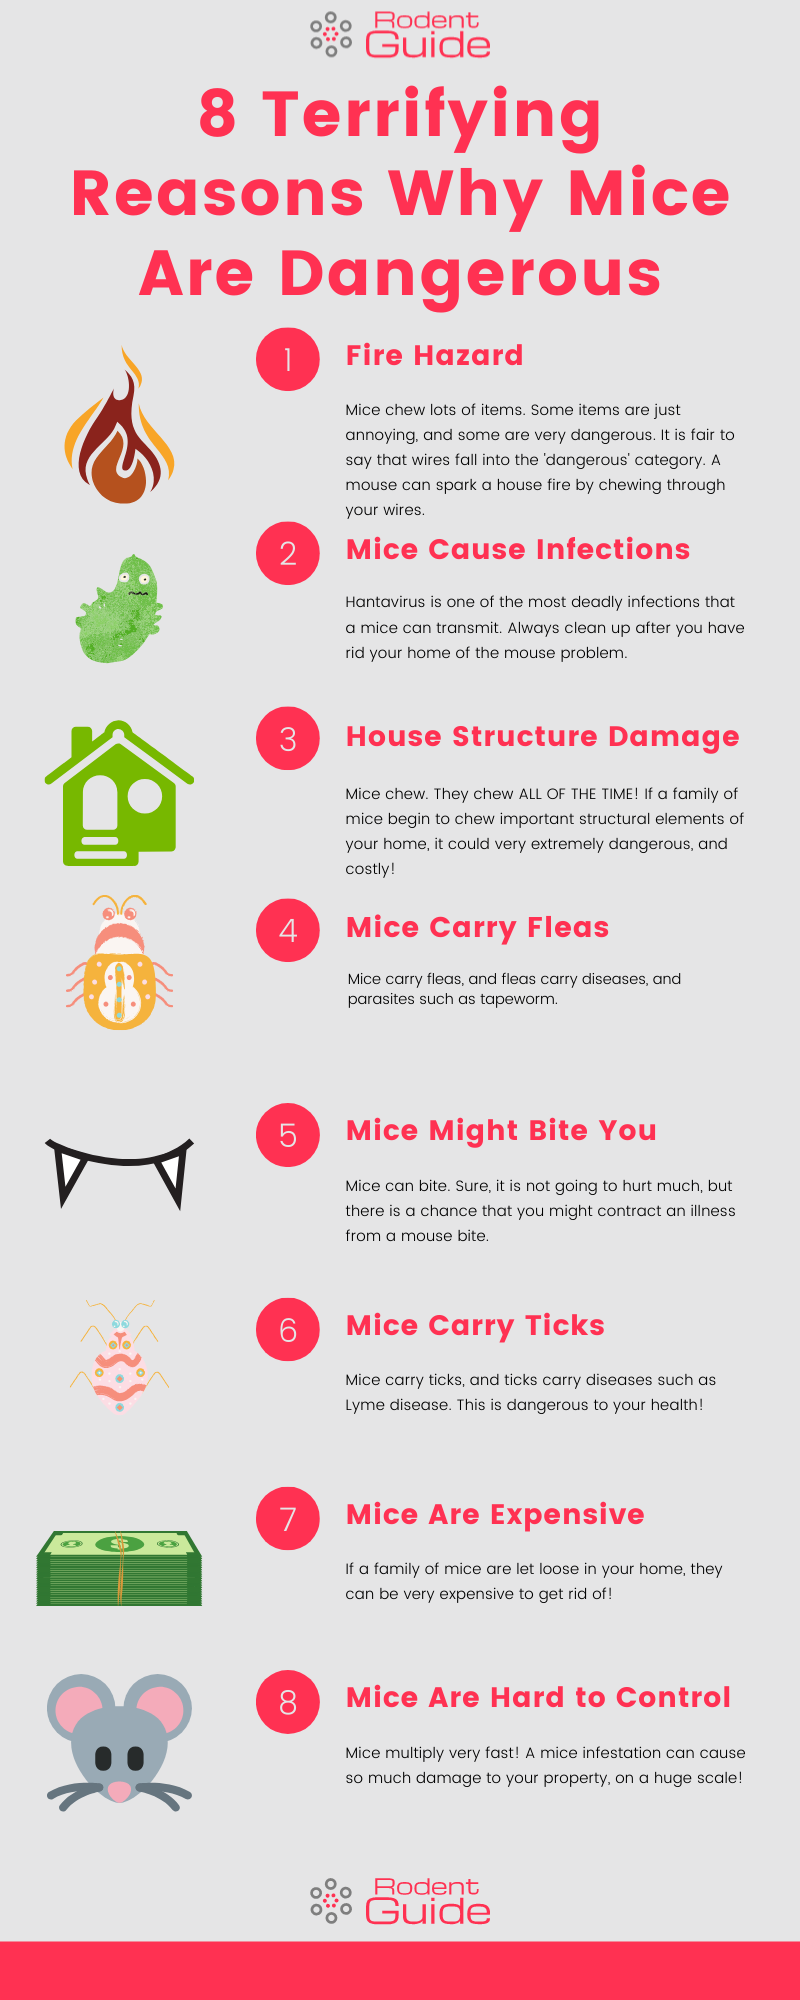 8 Terrifying Reasons Why Mice Are Dangerous Infographic